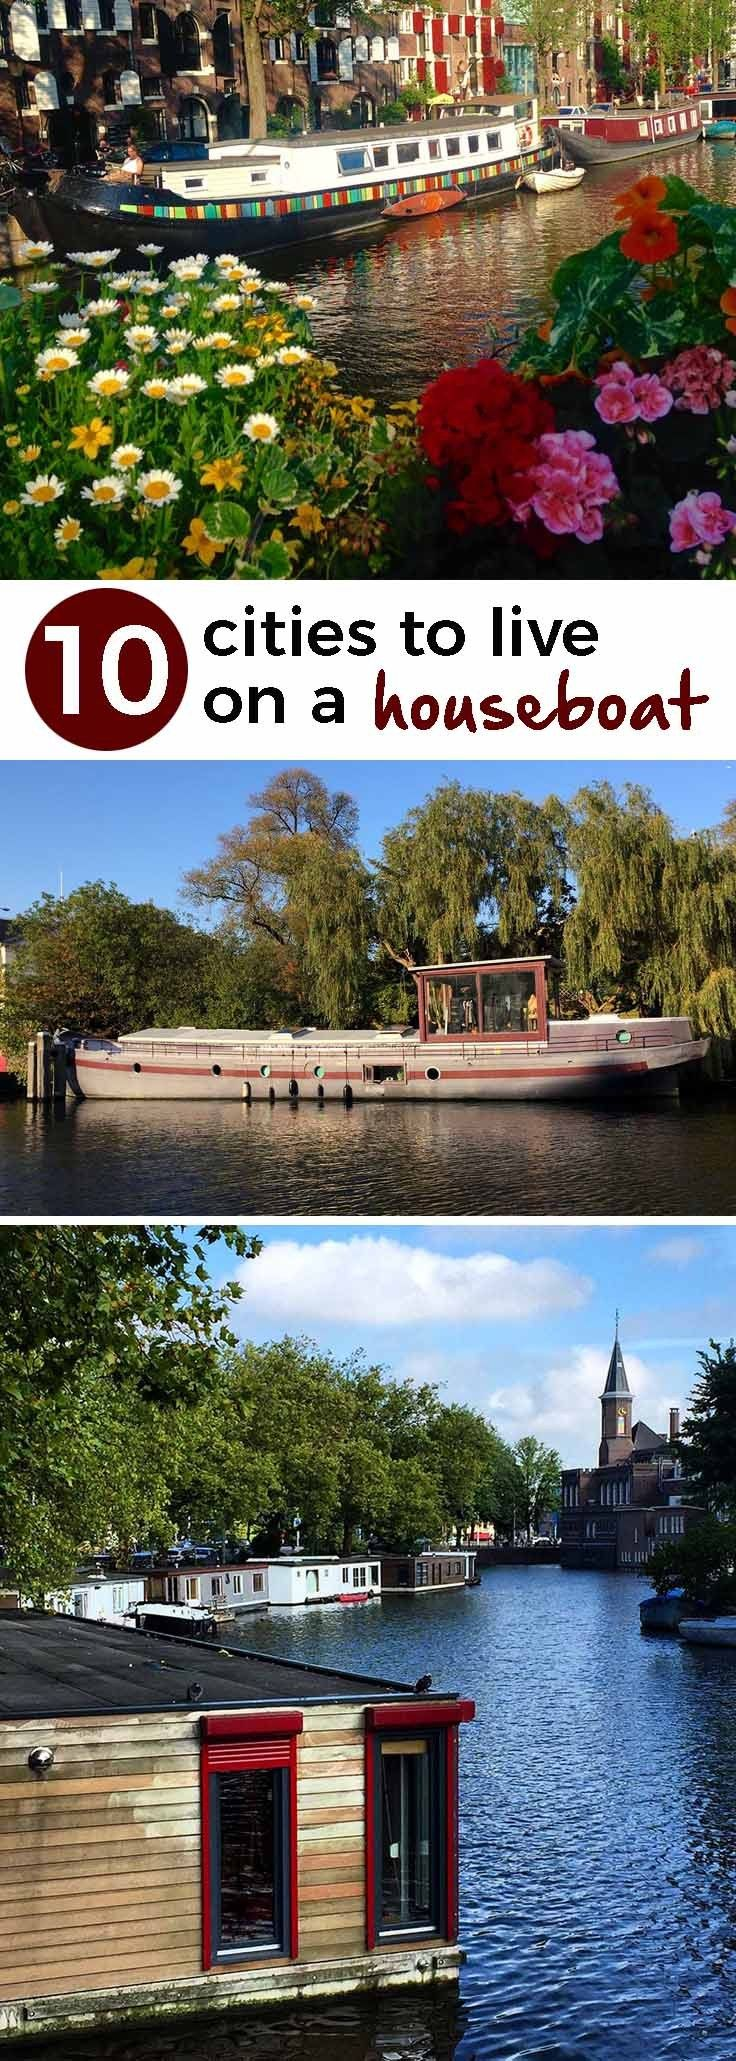 10 cities to live on a houseboat live in an urban